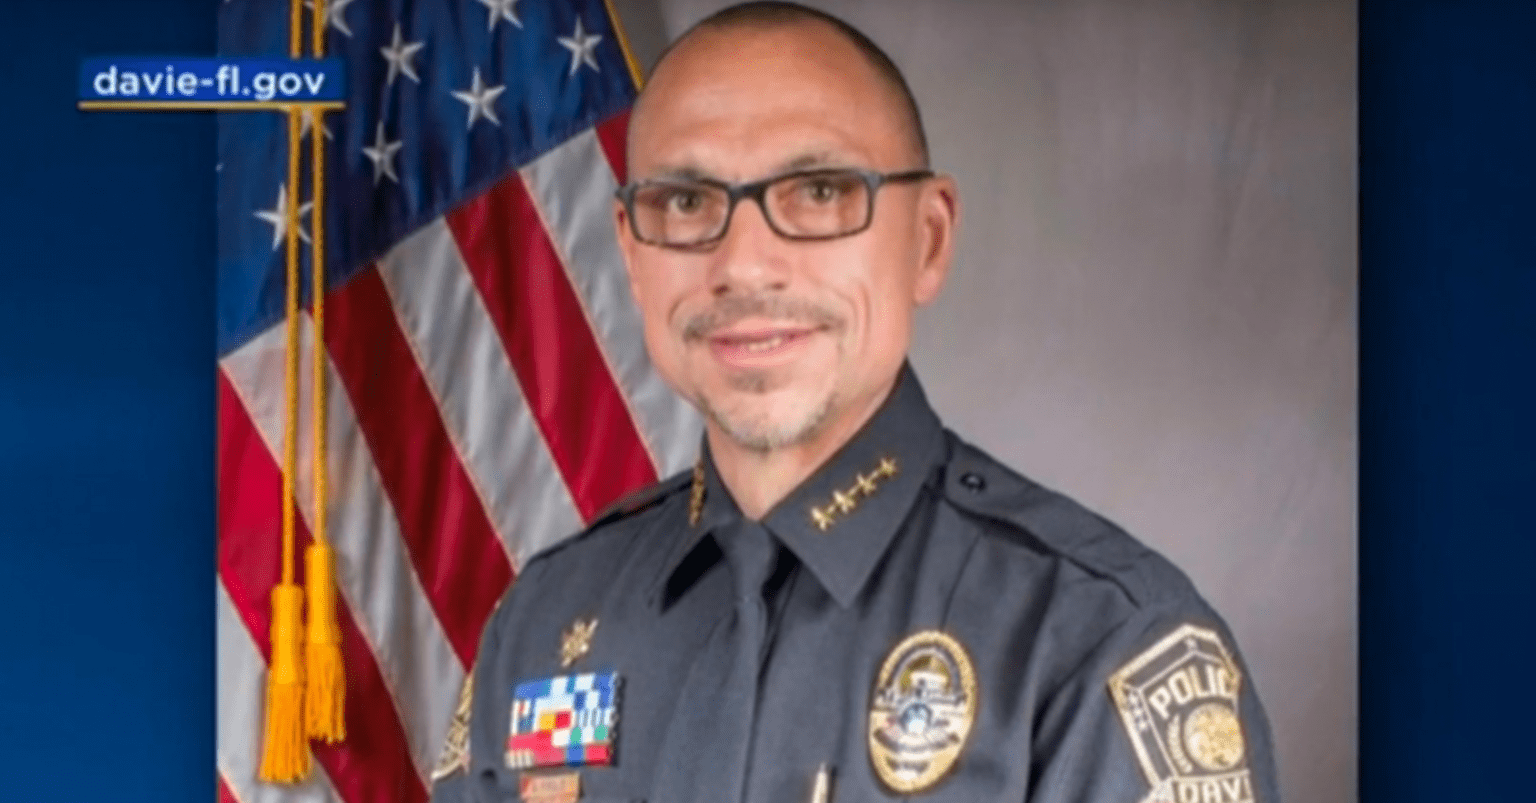 Chief Dale Engle from the DPD is in some hot water after trying to curtail his officer's fears from the pandemic, using some seemingly derogatory methods.